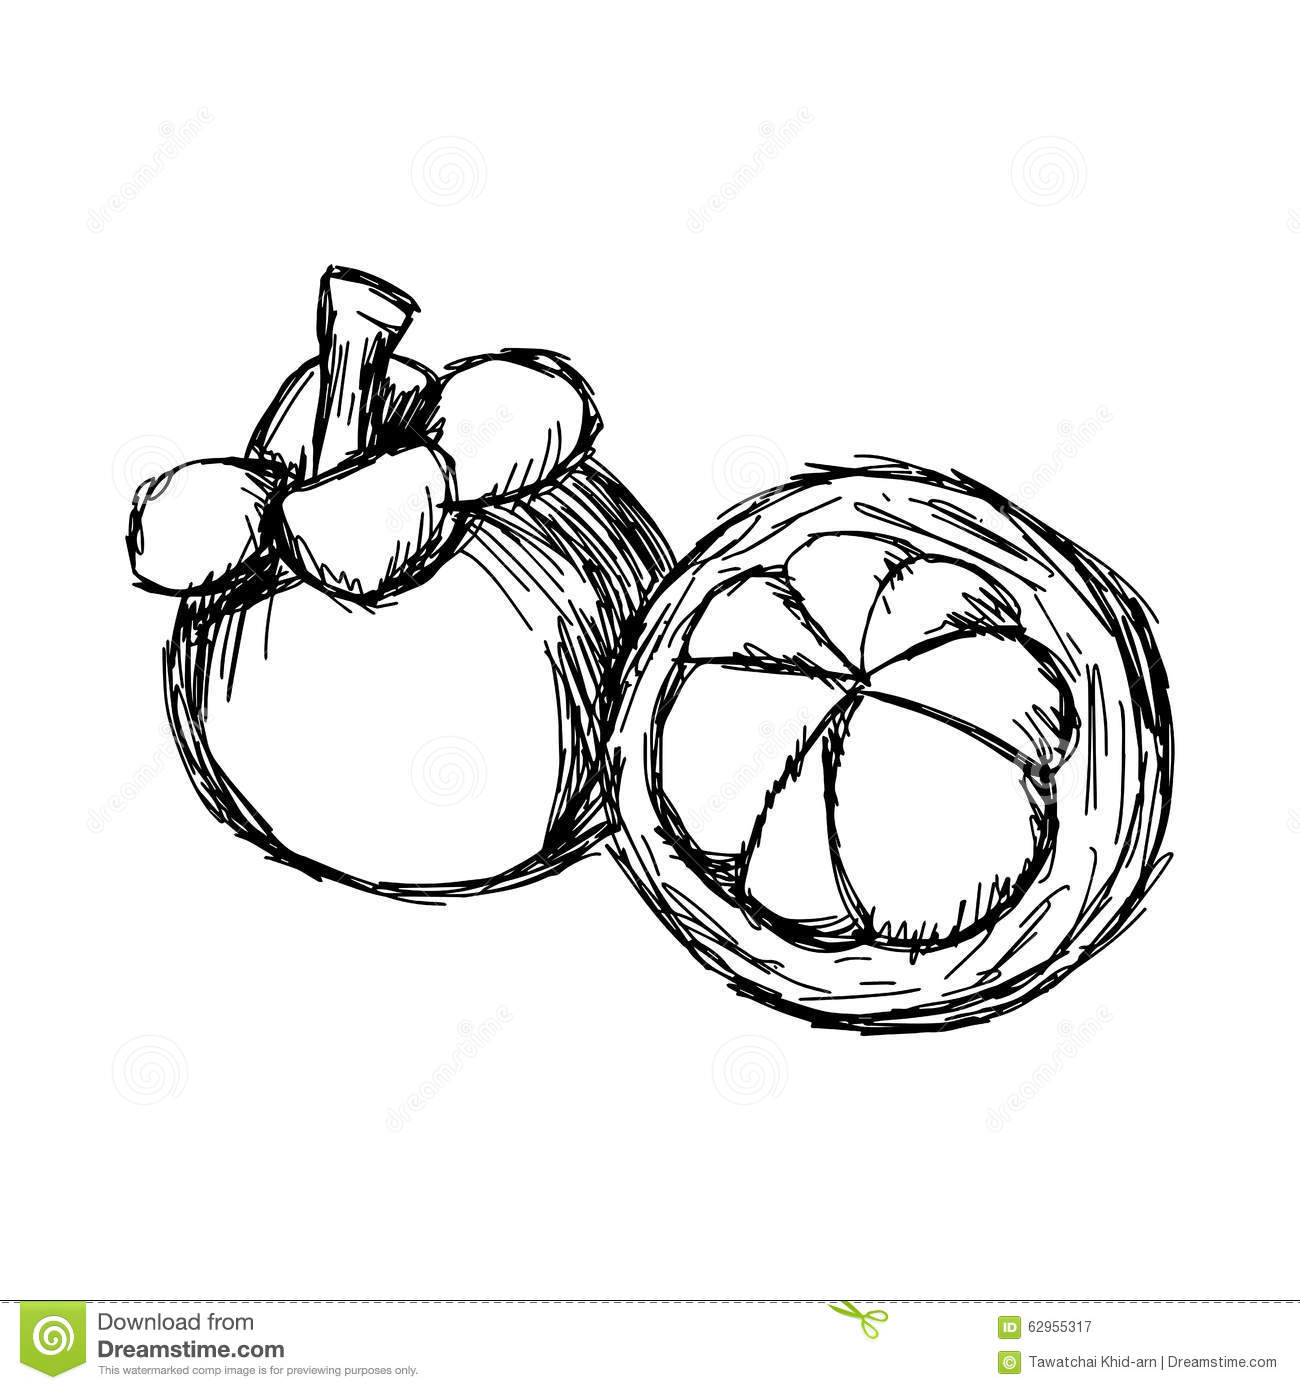 mangosteen coloring pages - photo#13